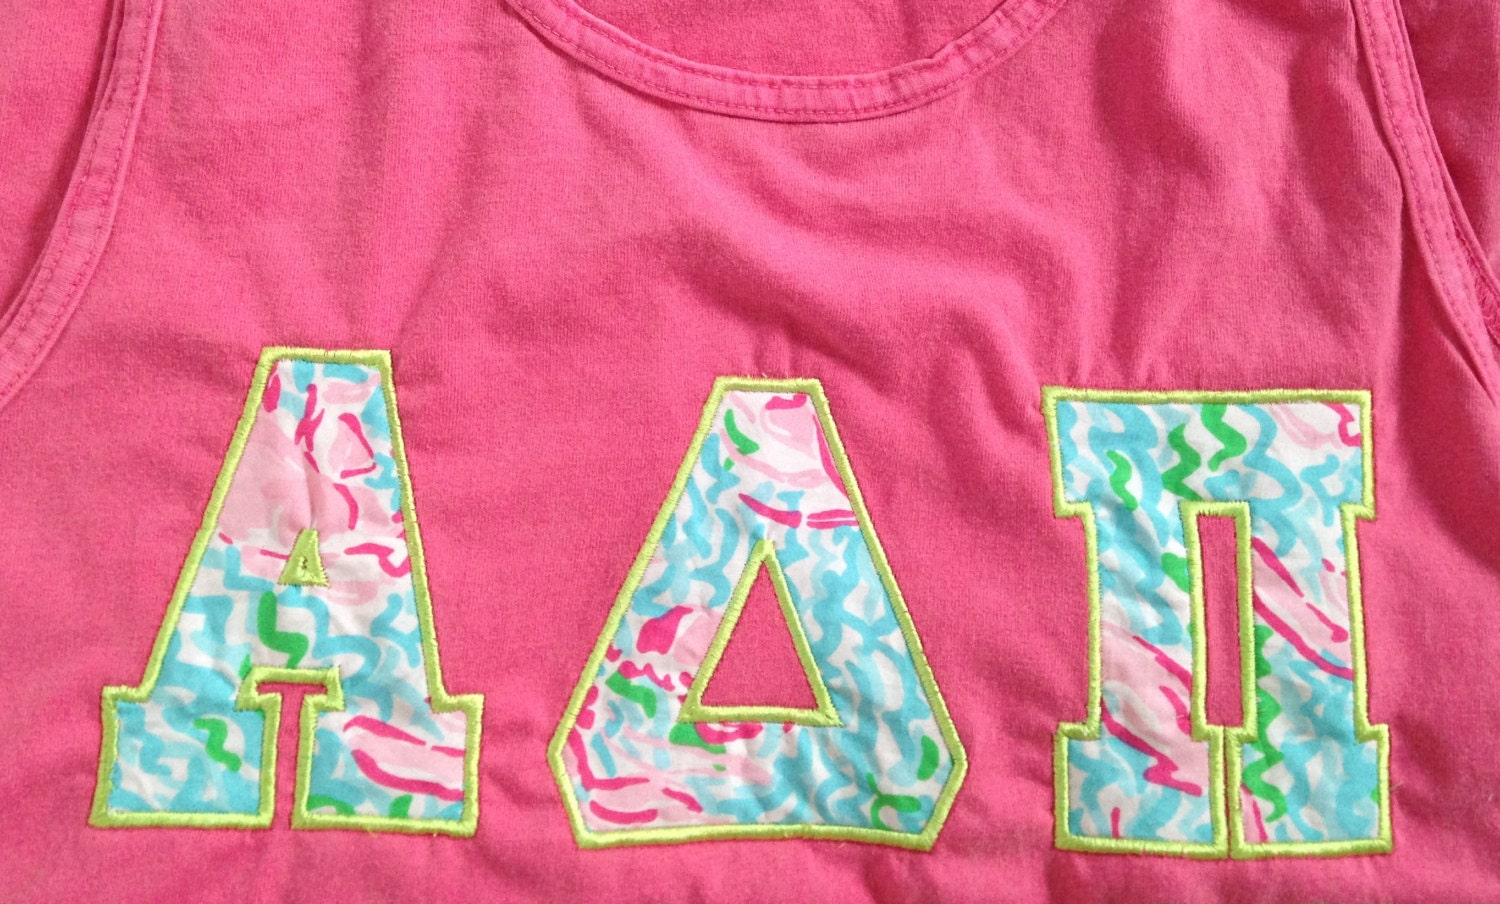 Sorority letter shirts lilly pulitzer wwwimgkidcom for Lilly pulitzer sorority letters